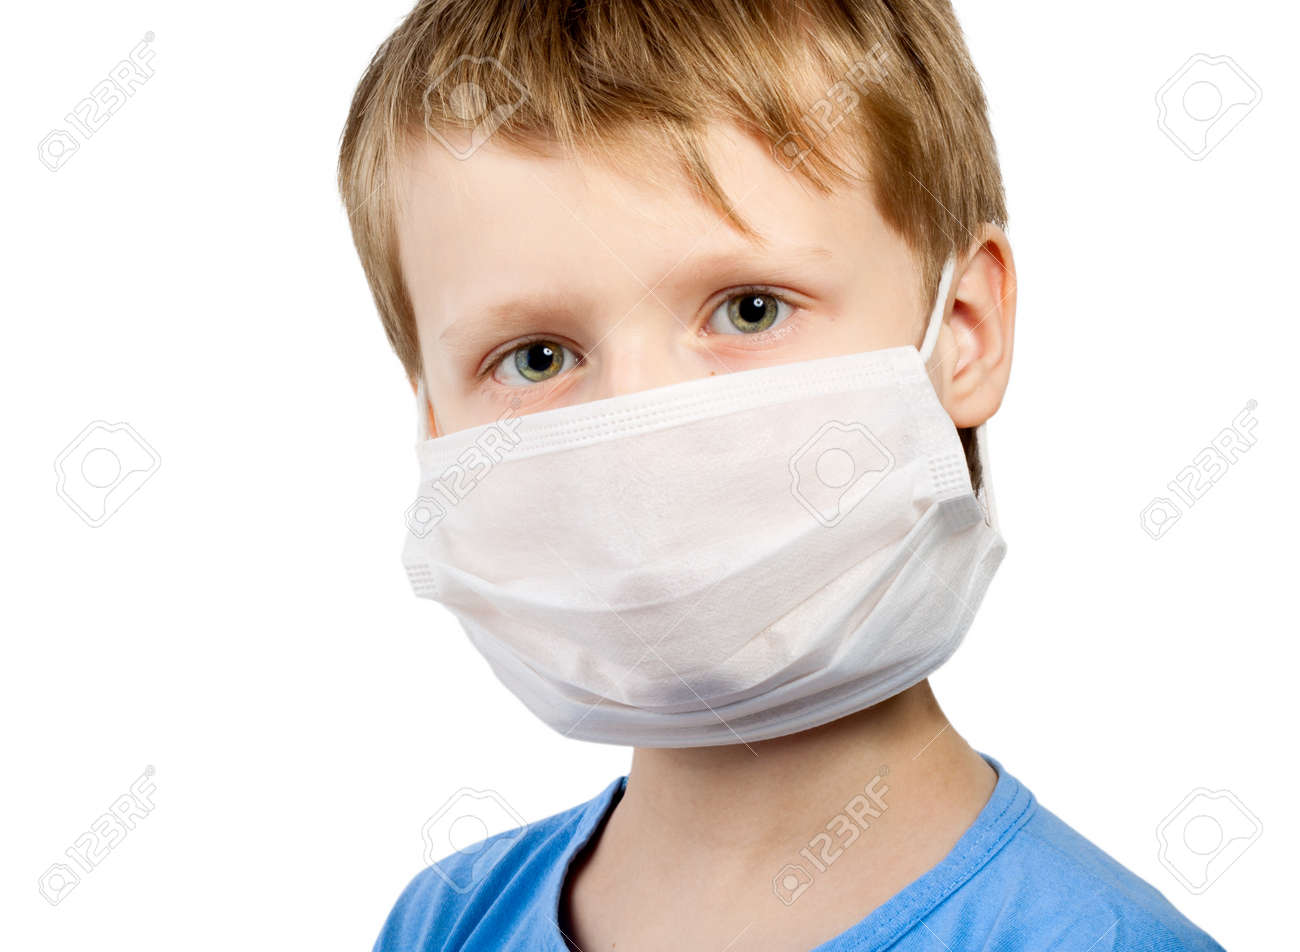 Illness Flu In Child Healthcare Isolated Mask Surgical Medicine Boy